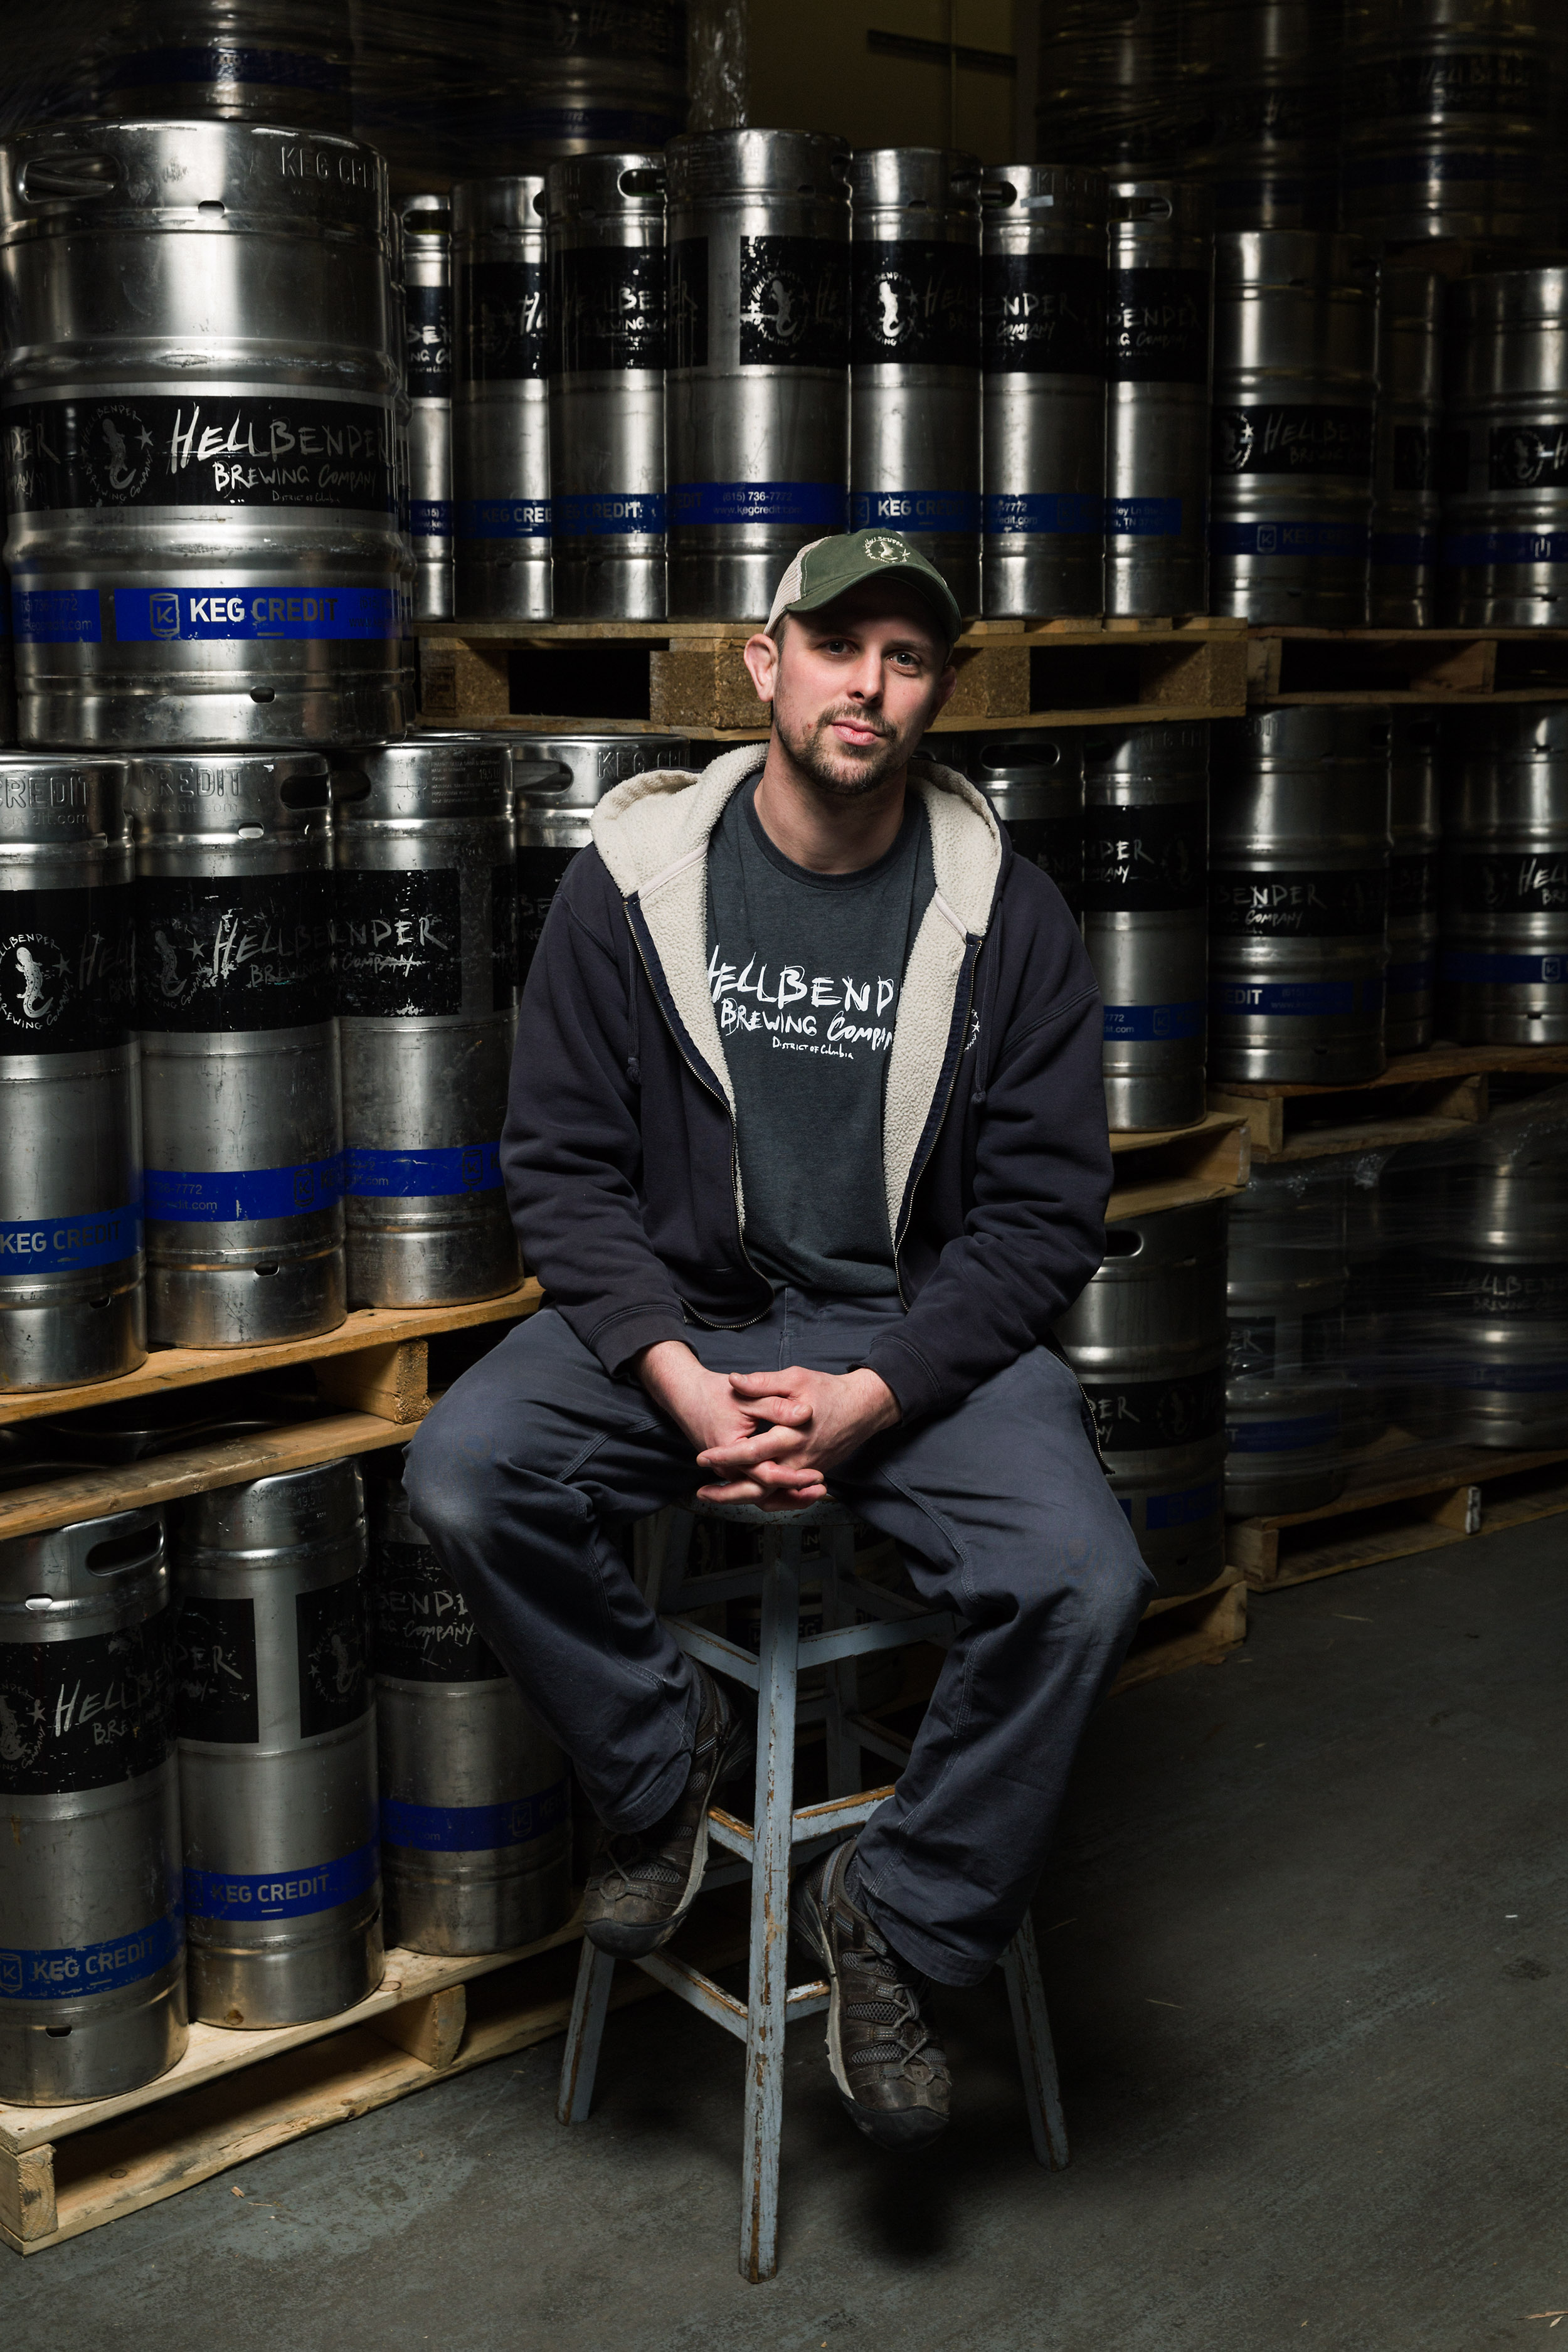 Co-Founder of Hellbender Brewing Company